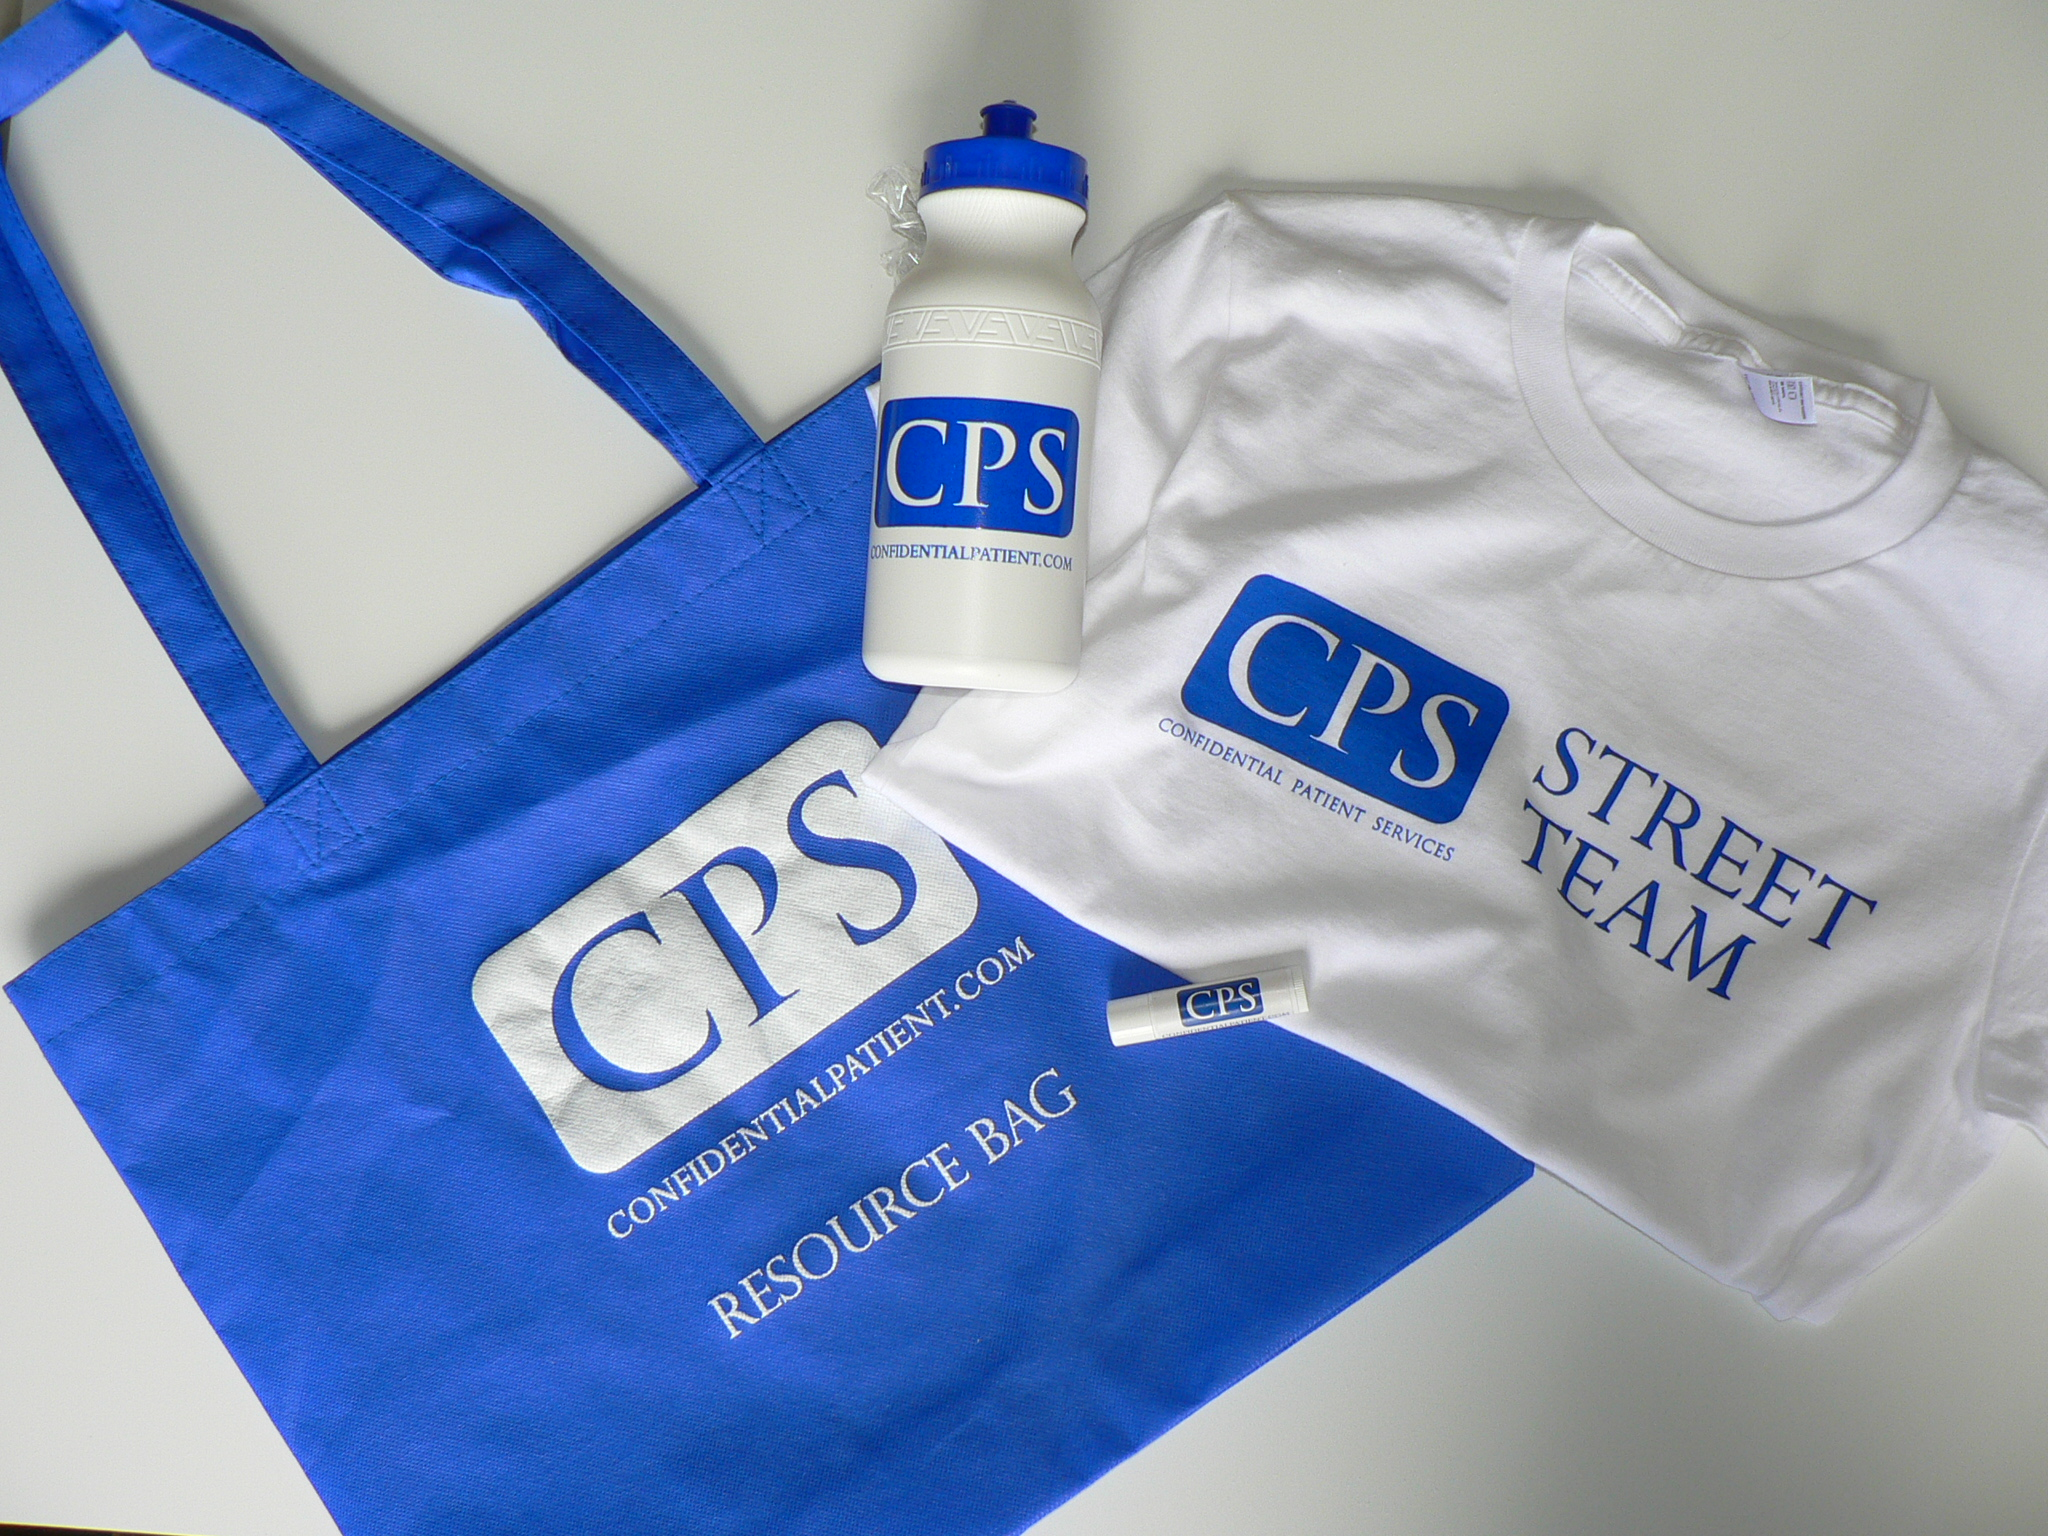 CPS Promotional